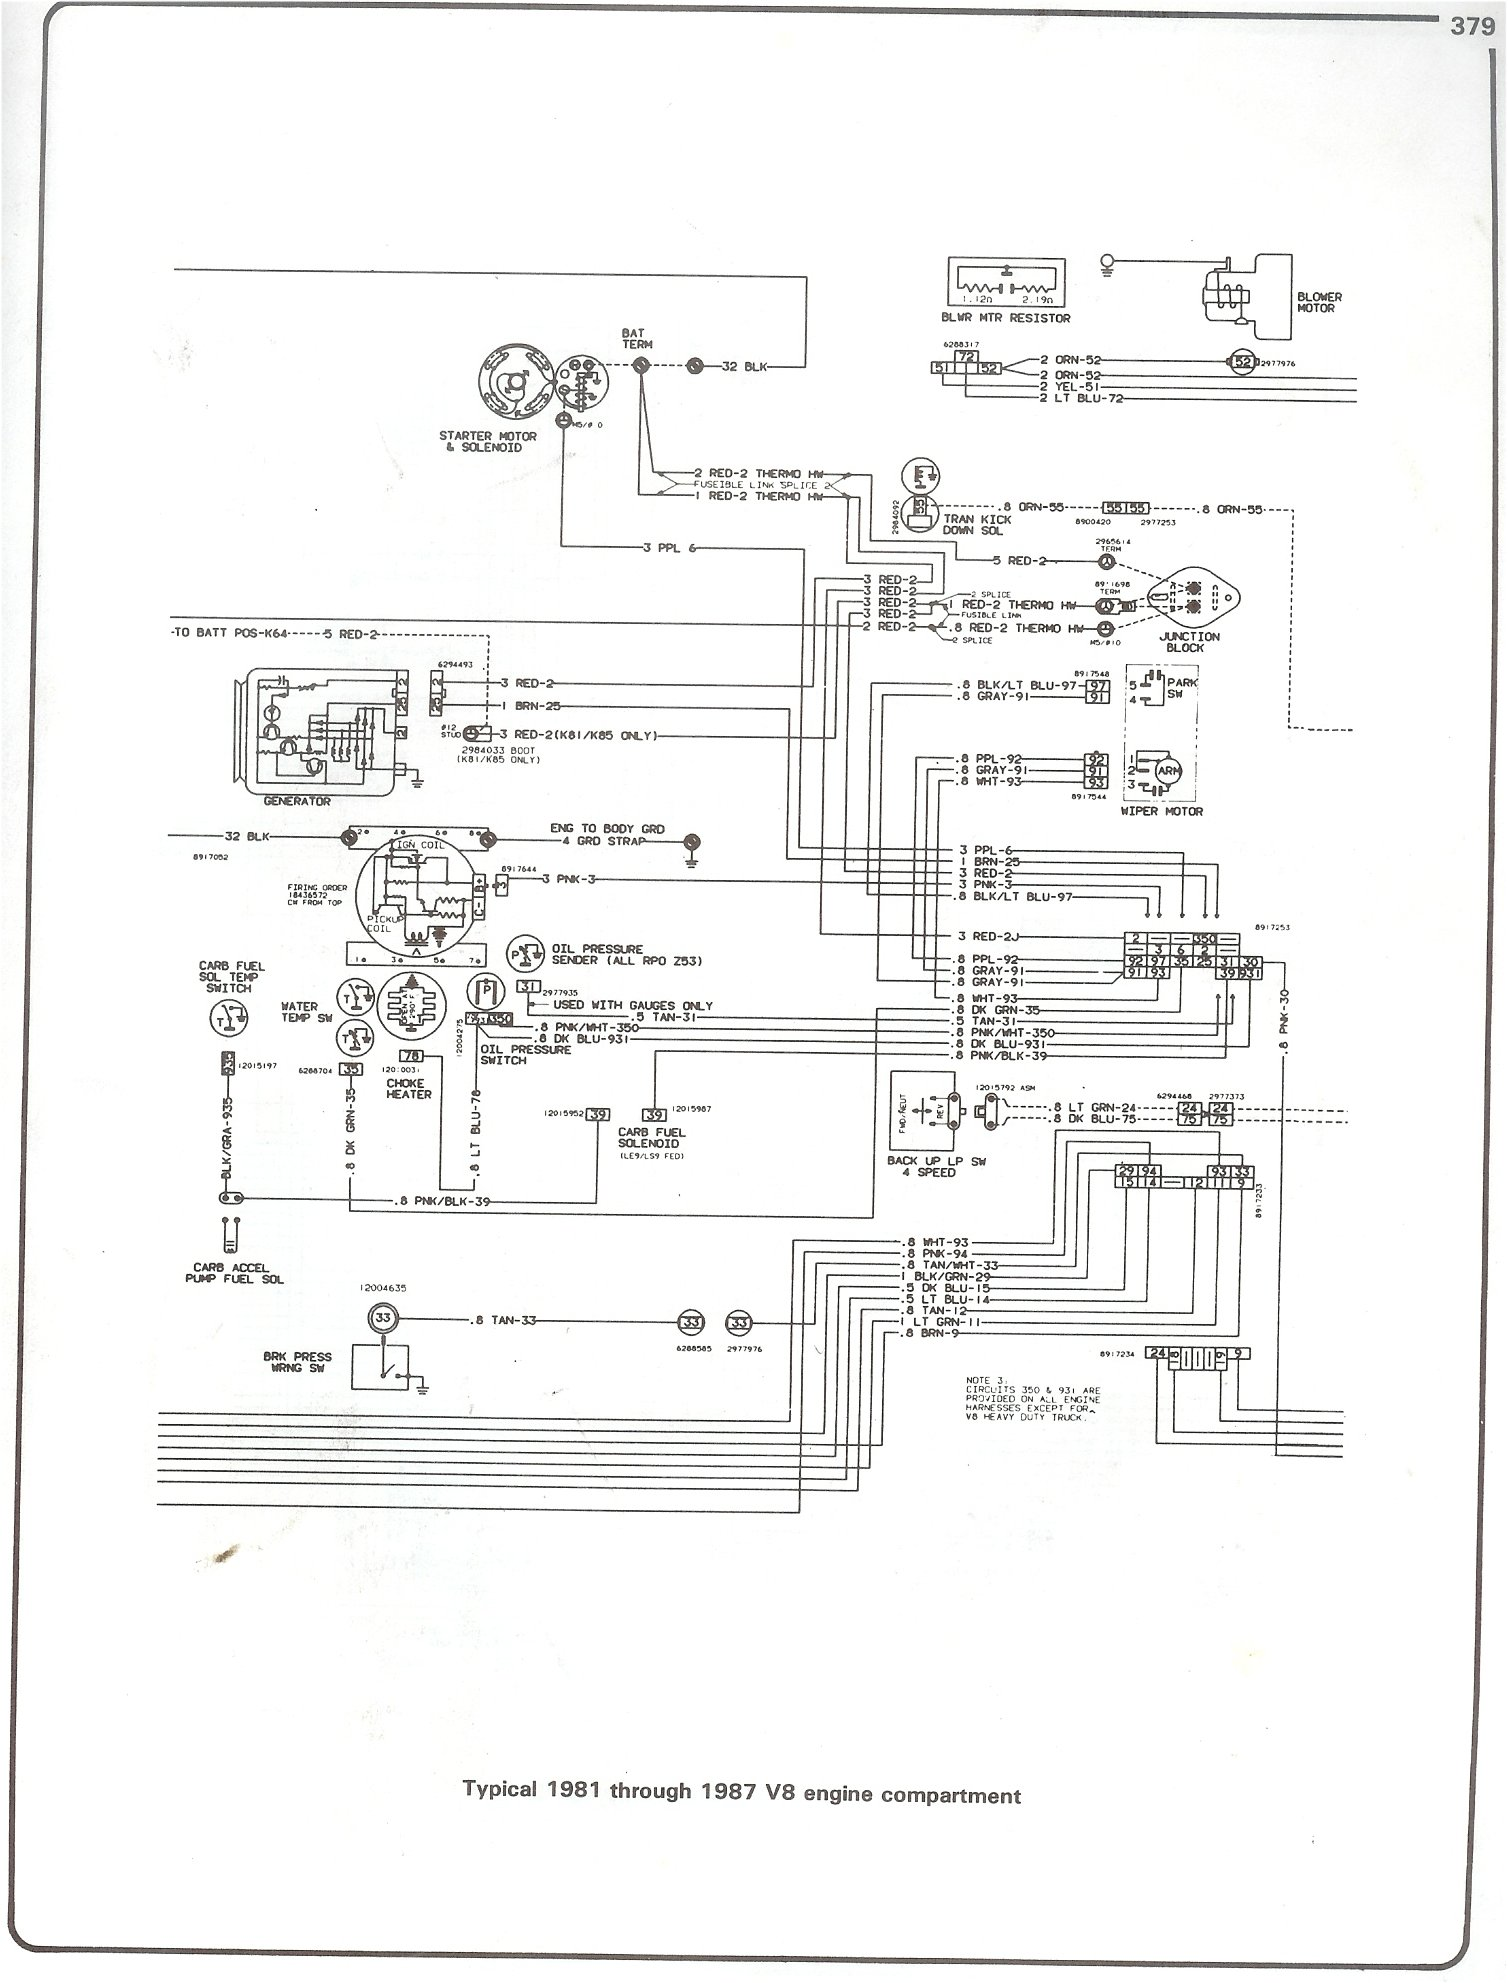 complete 73 87 wiring diagrams 1987 chevrolet fuel tank wiring diagram 81  87 v8 engine compartment